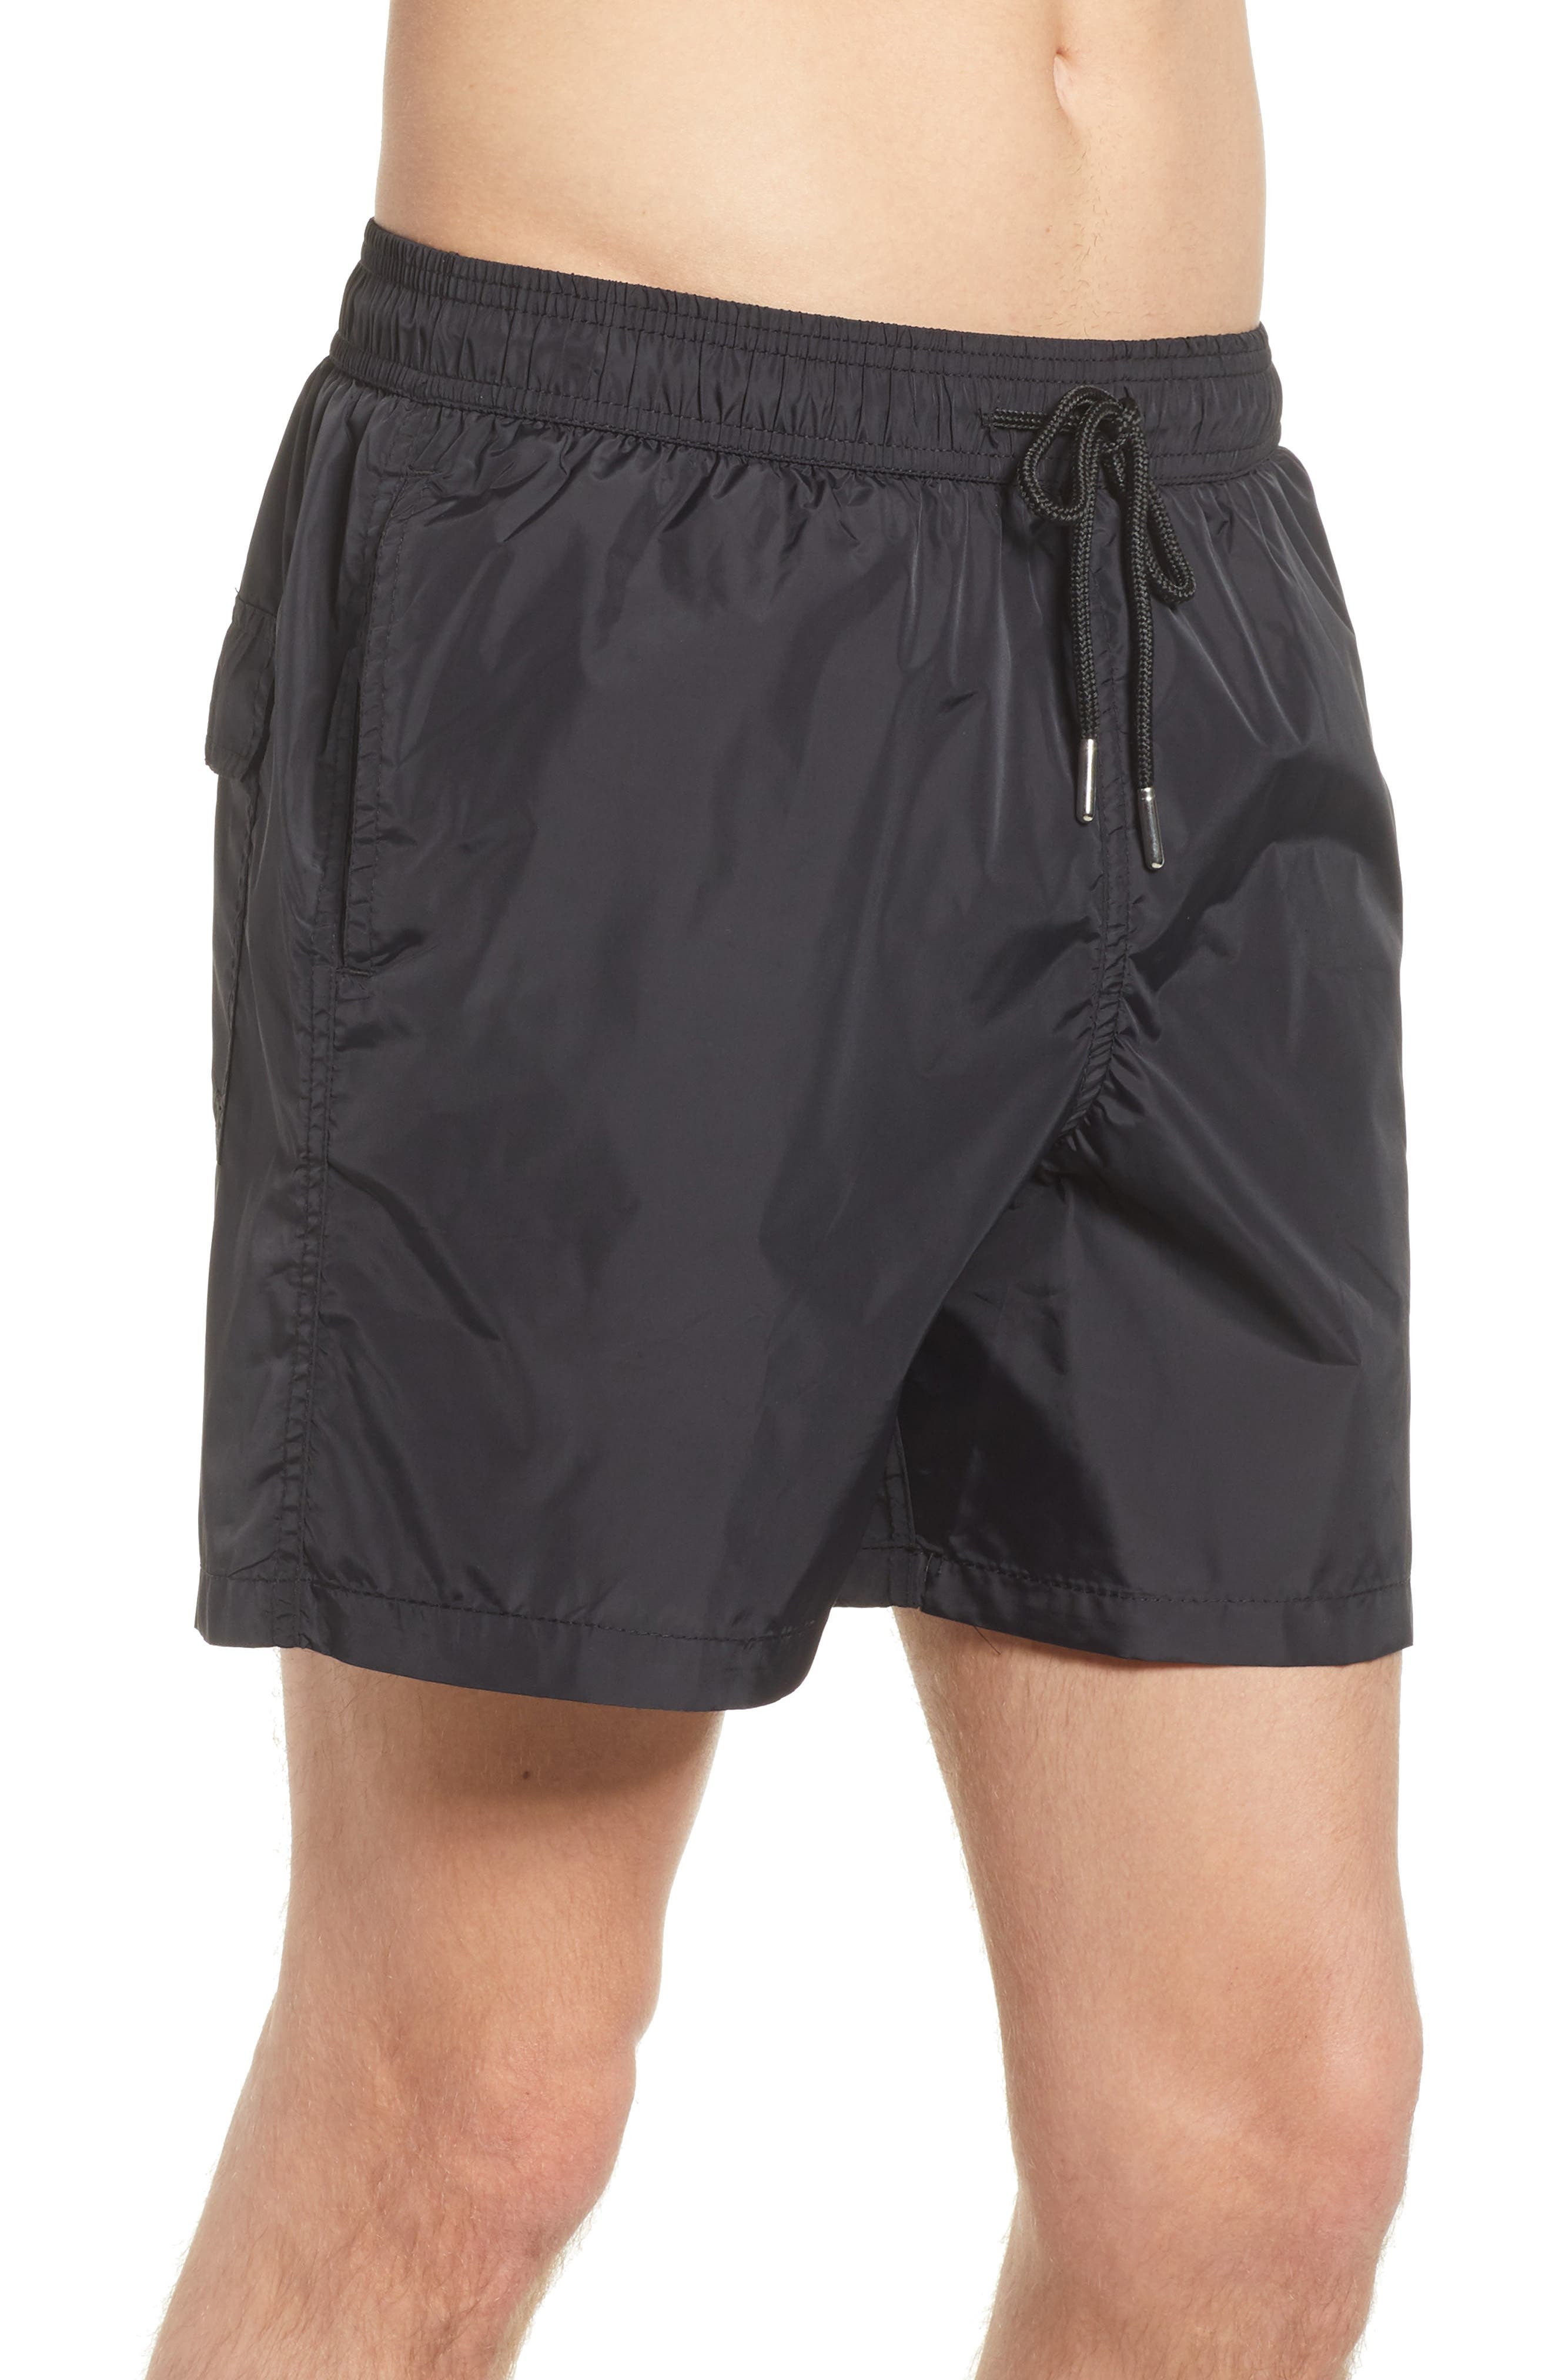 Swim Trunks,                             Alternate thumbnail 3, color,                             Black /Turquoise